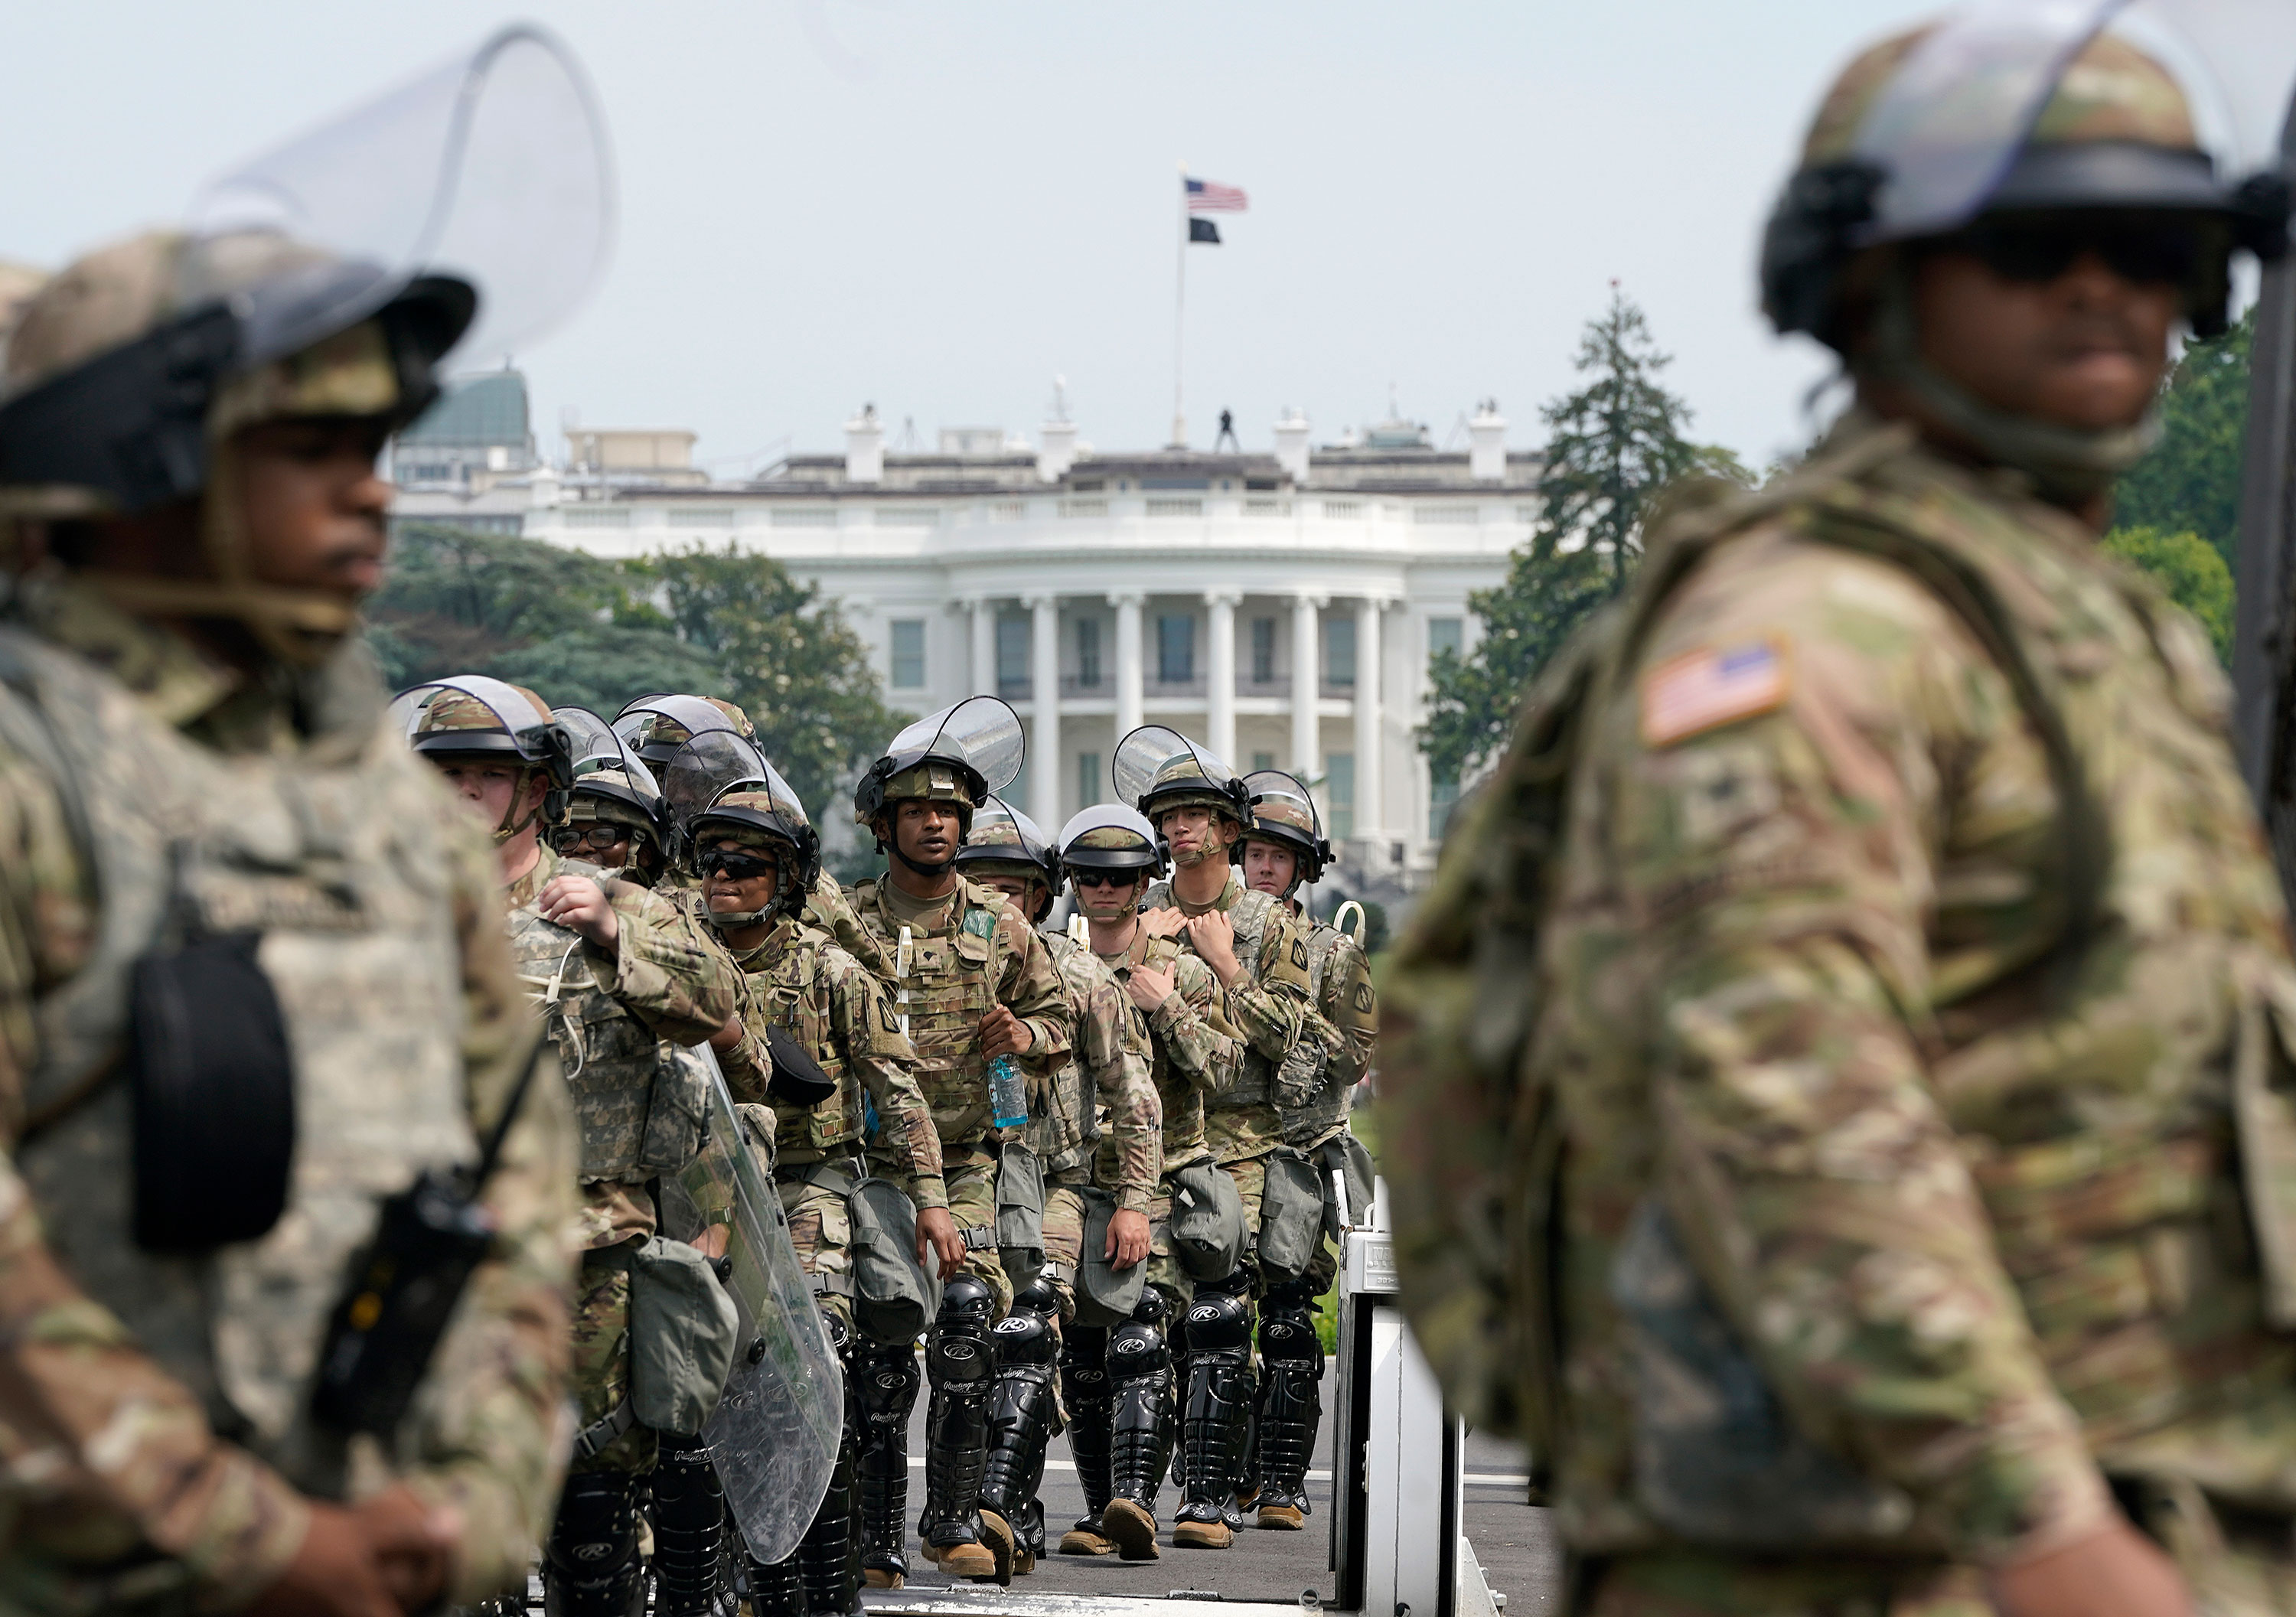 National Guard members deploy near the White House during protests on June 6, in Washington.